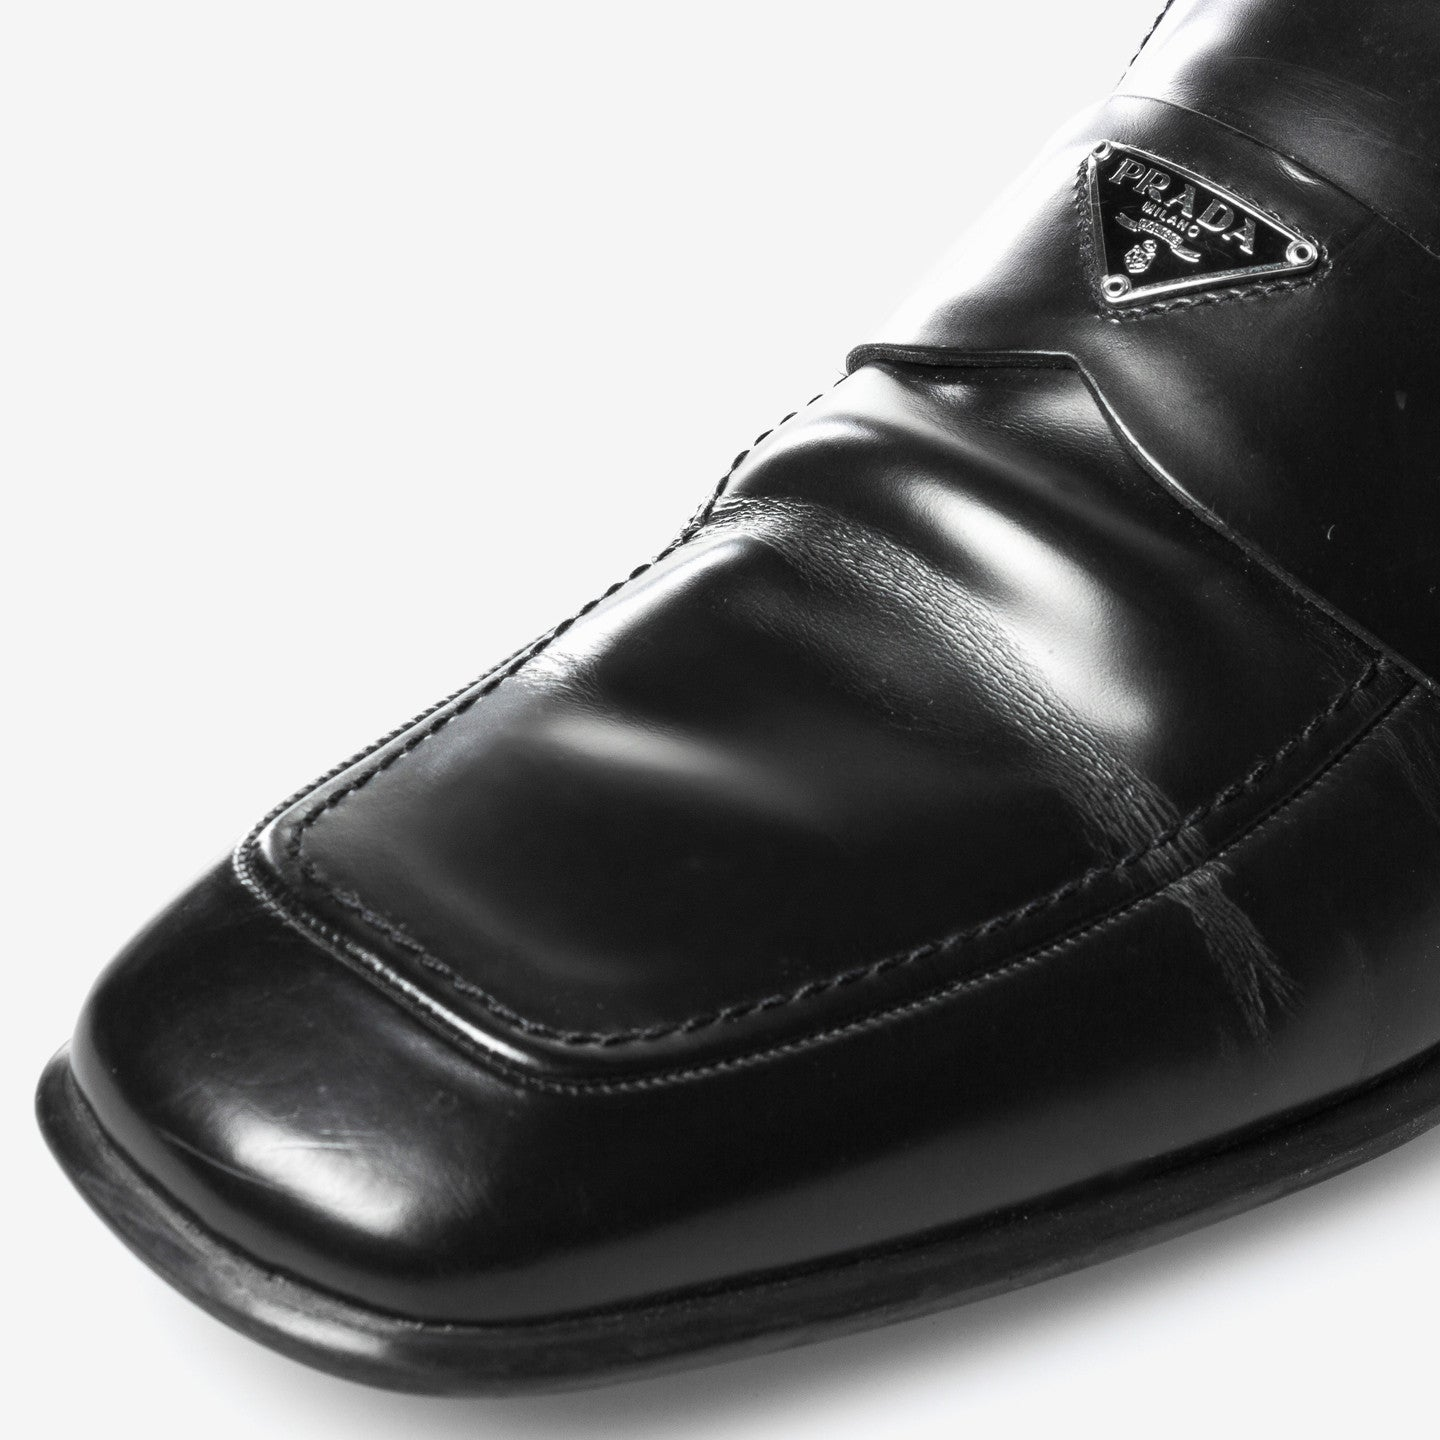 Prada / Leather square-toe loafers